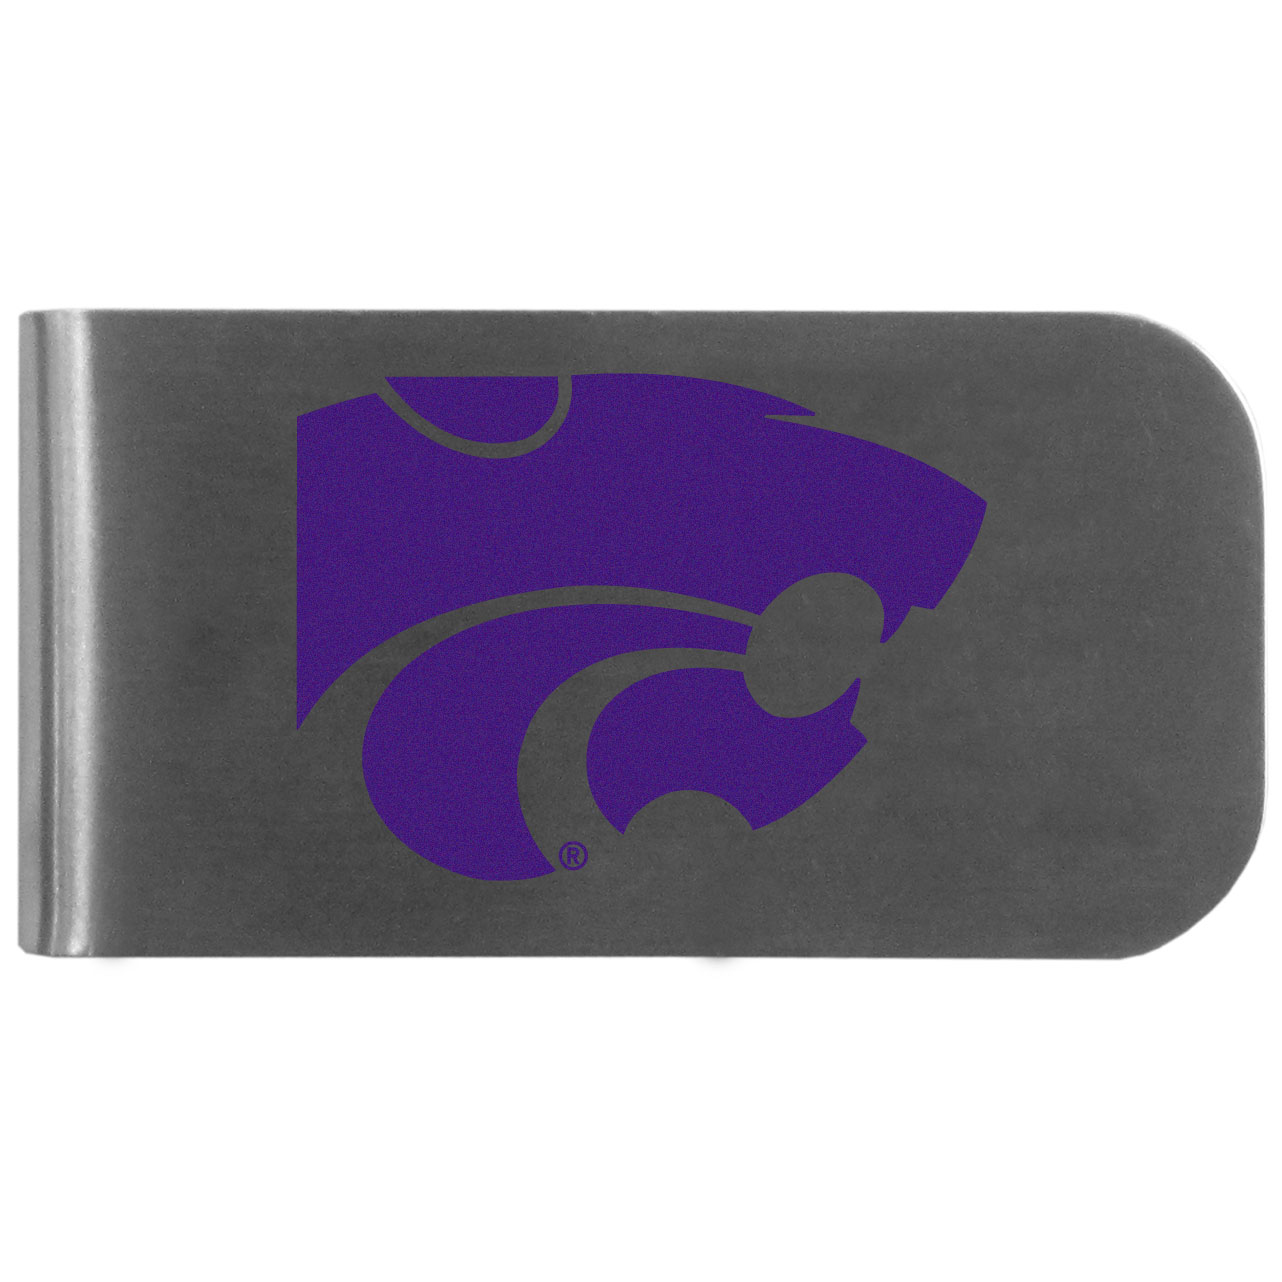 Kansas St. Wildcats Logo Bottle Opener Money Clip - This unique money clip features a classic, brushed-metal finish with a handy bottle opener feature on the back. The clip has the Kansas St. Wildcats logo expertly printed on the front of the clip.